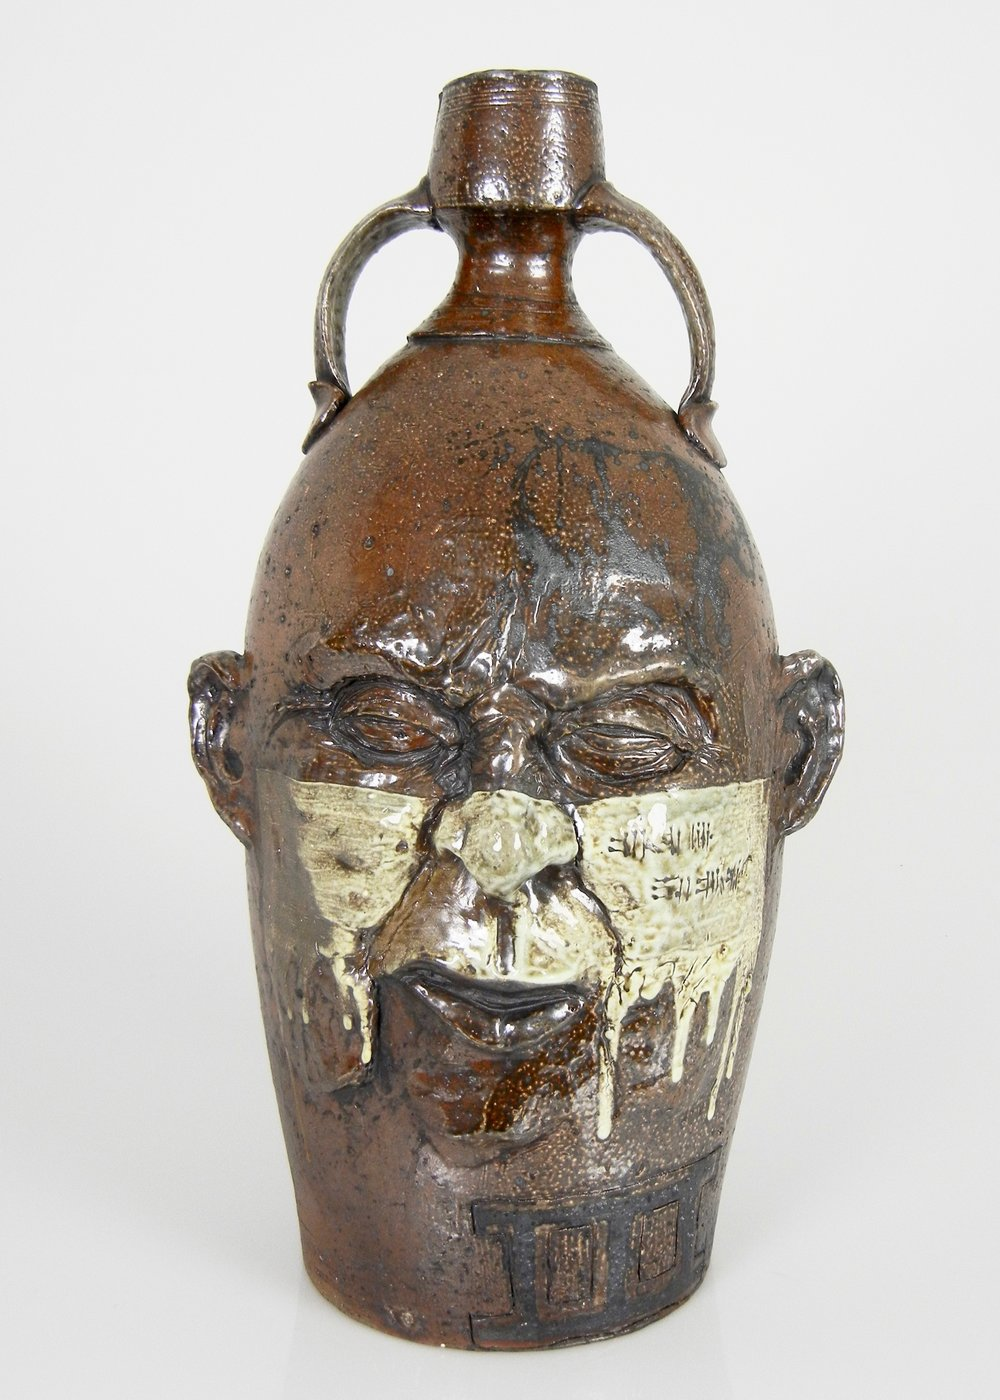 Lorenz Pottery, ceramics, pottery, folk pottery, wood fired, soda fired, jug, face jug, ugly jug